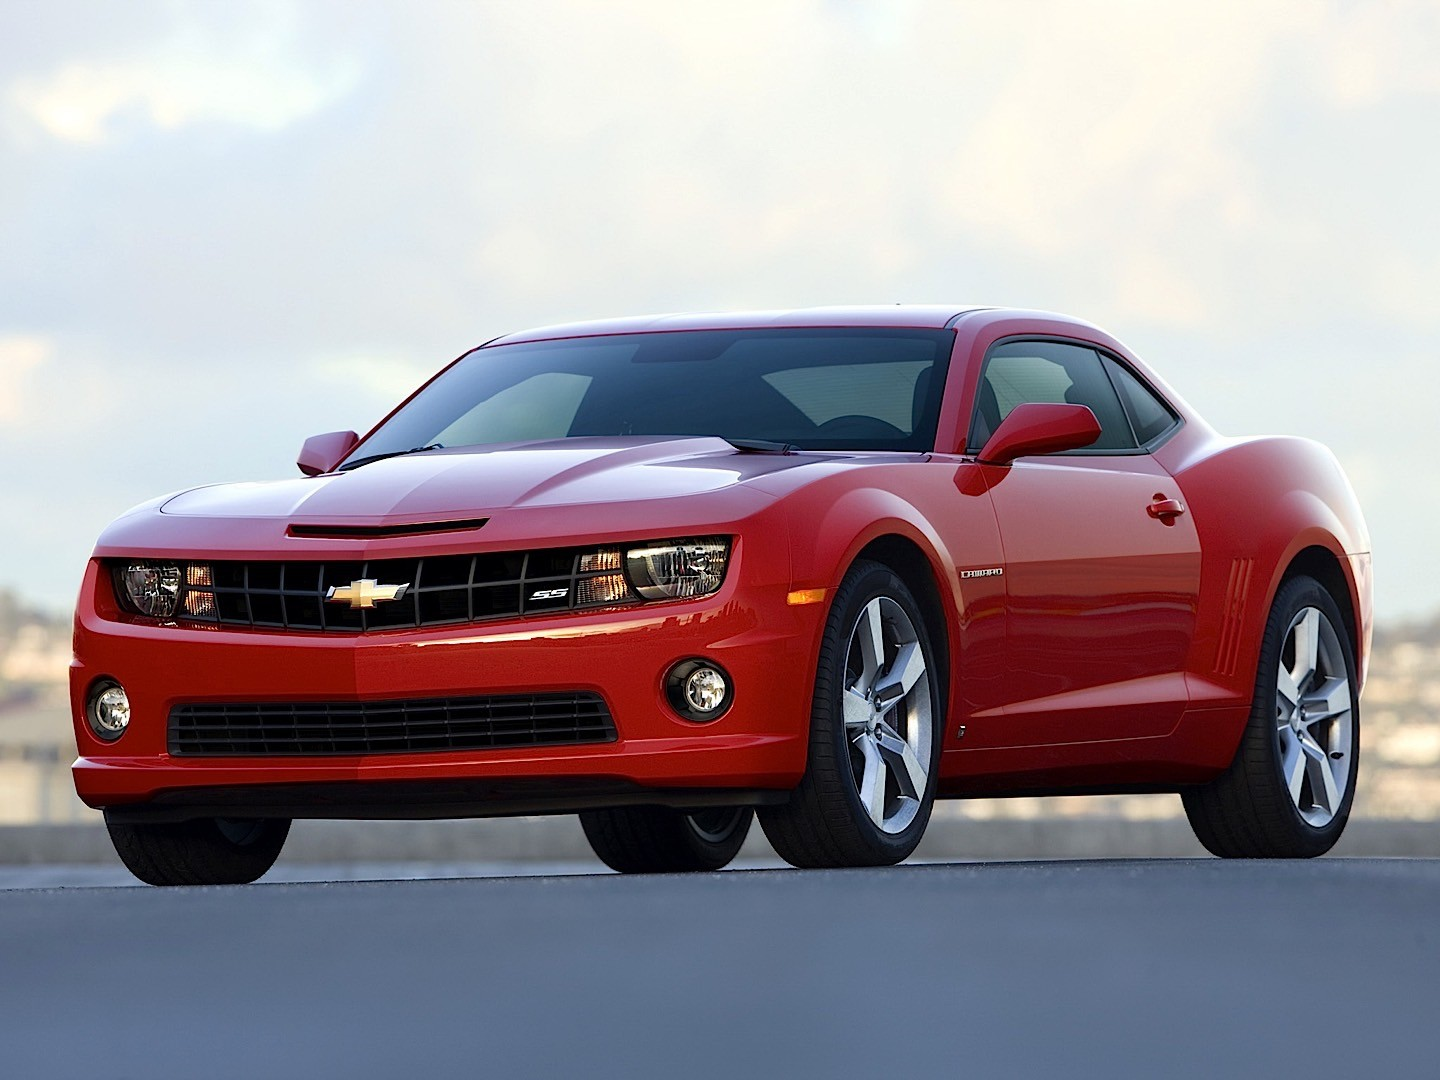 chevrolet camaro ss specs 2010 2011 2012 2013. Black Bedroom Furniture Sets. Home Design Ideas